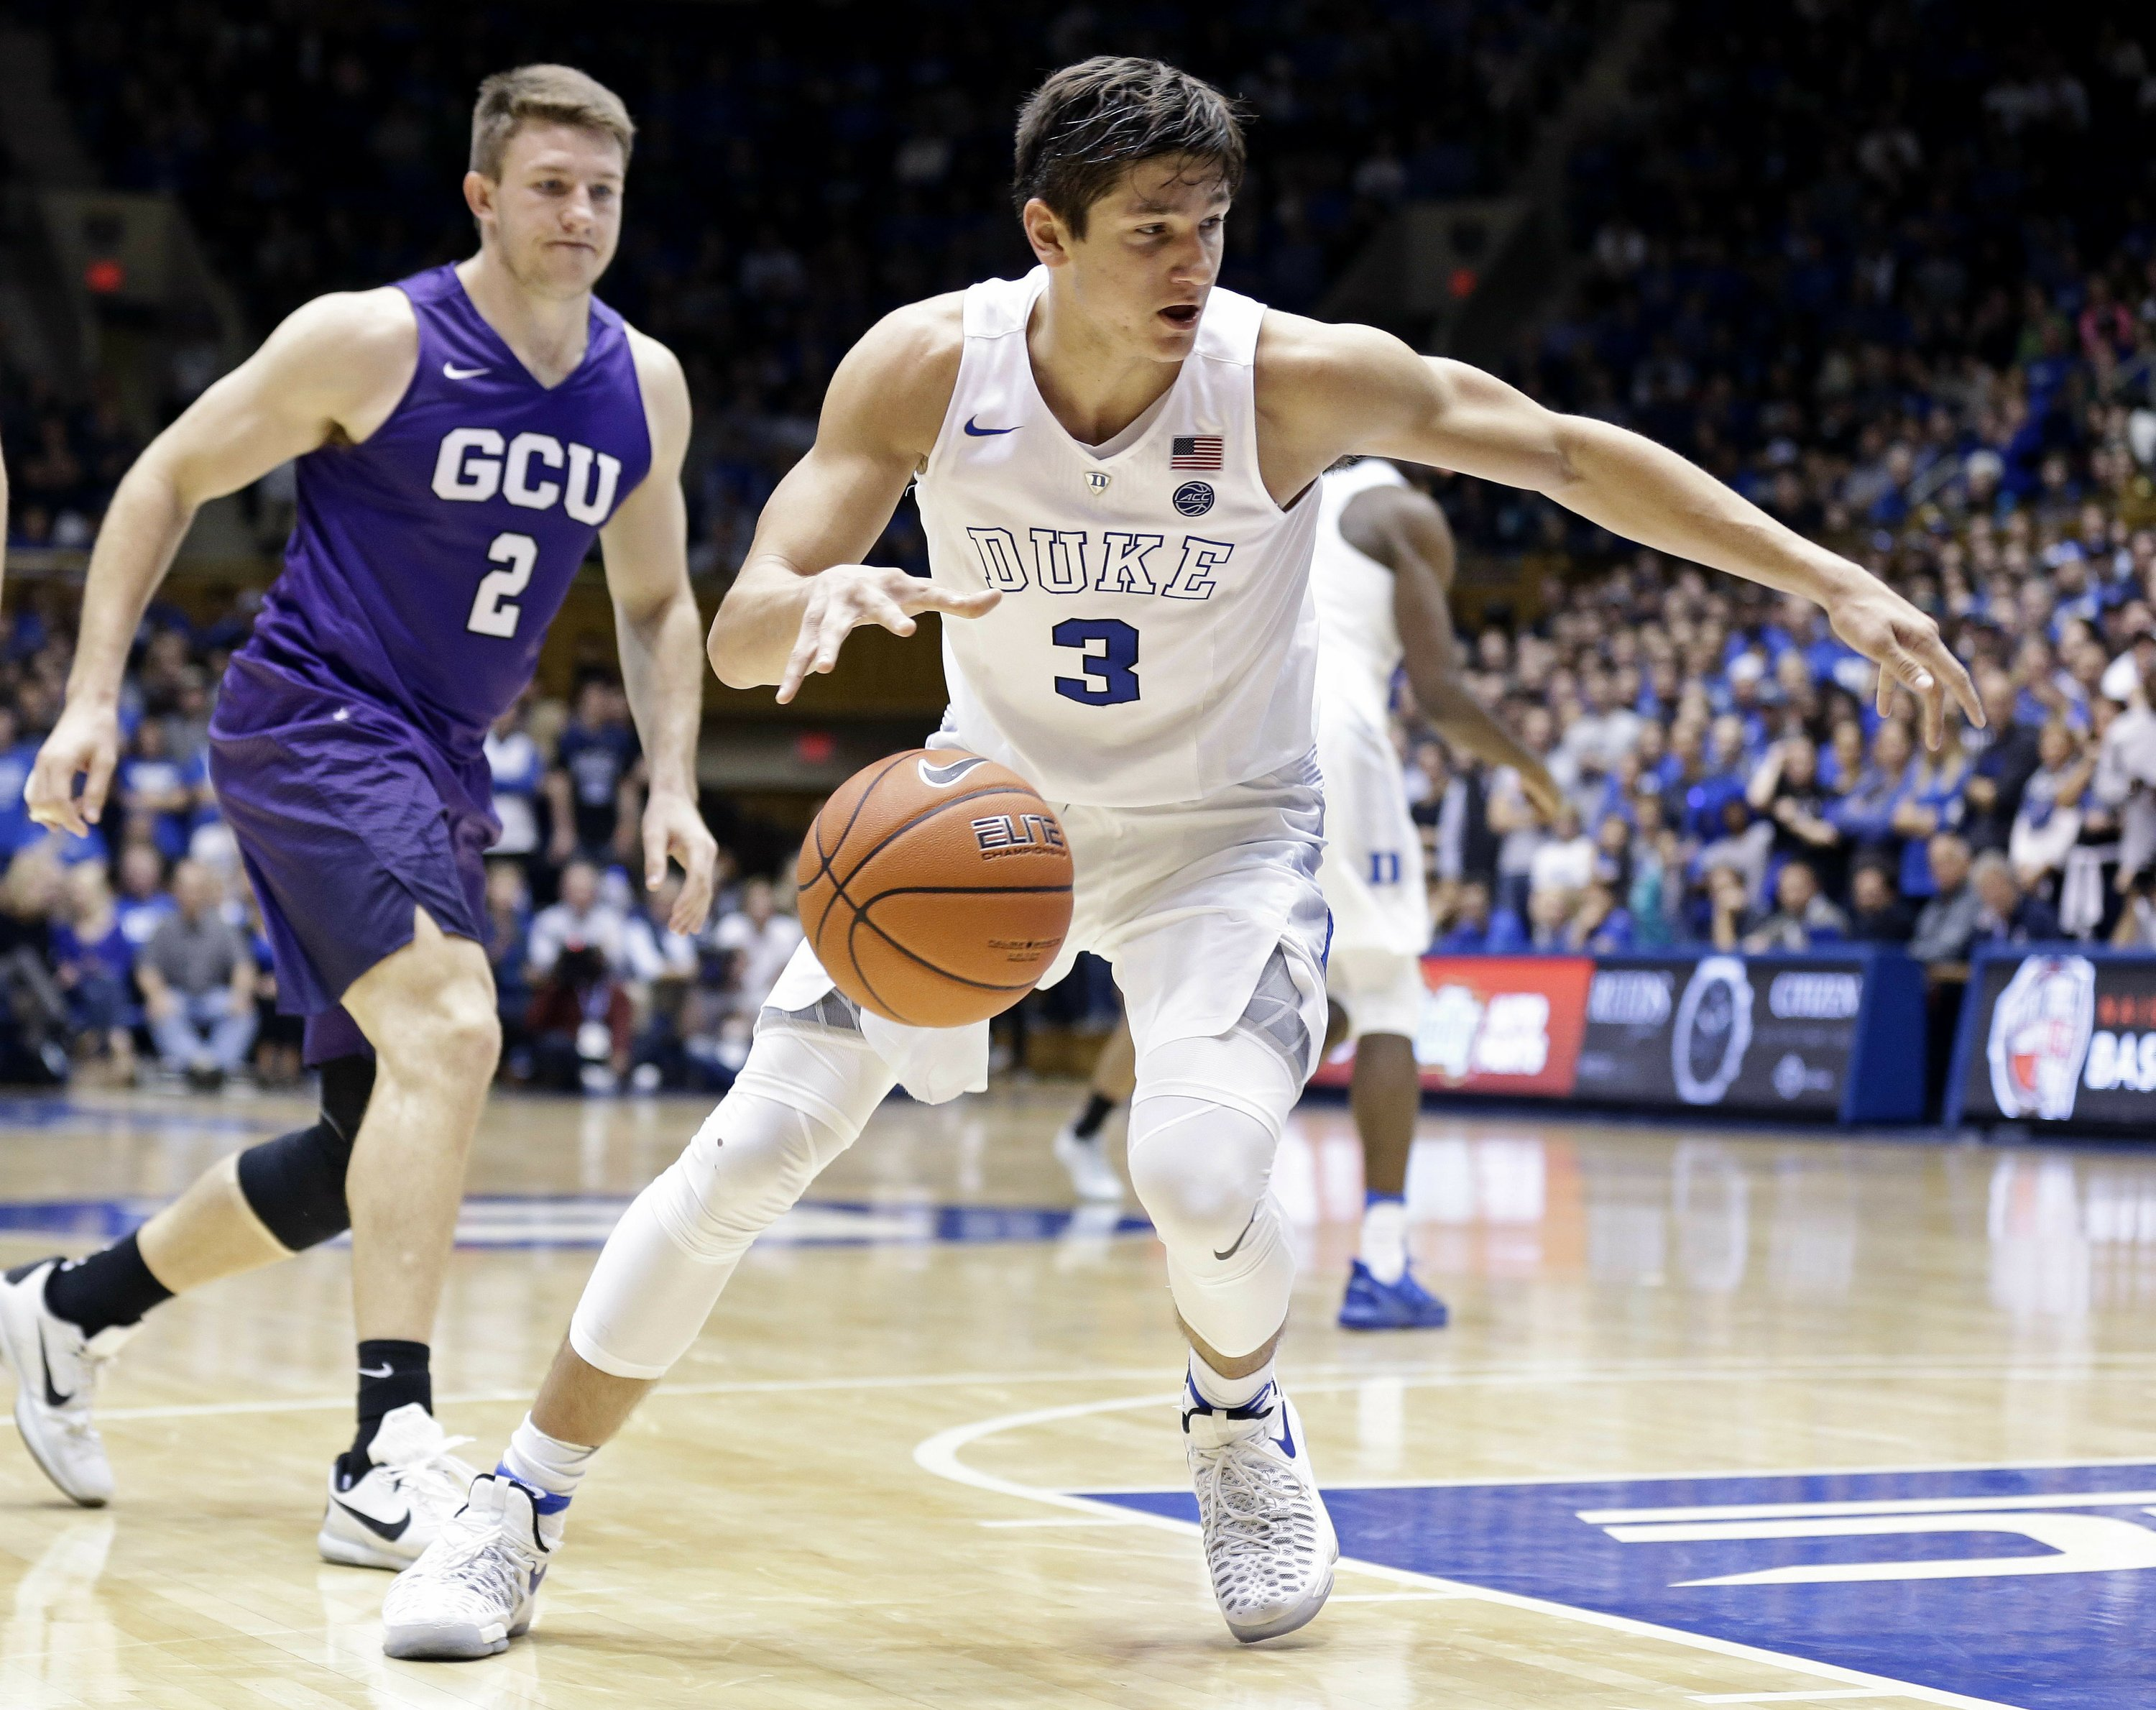 Duke stays solid No. 1 in men's basketball